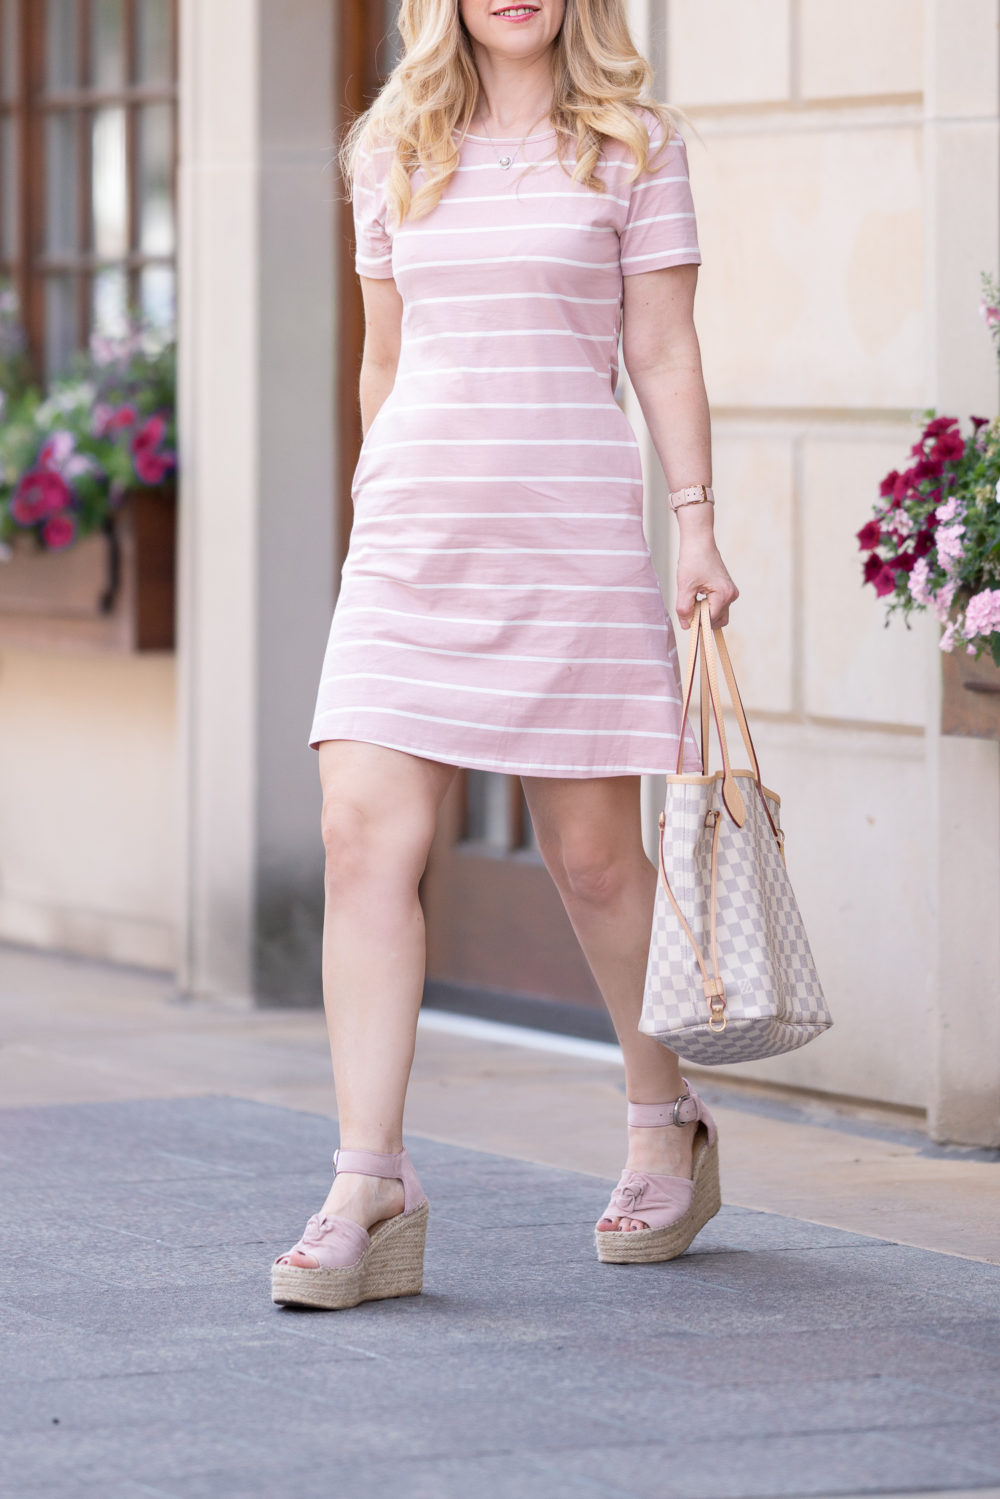 Petite Fashion Blog | Feager Women's Casual Striped Criss Cross Short Sleeve T Shirt Mini Dress